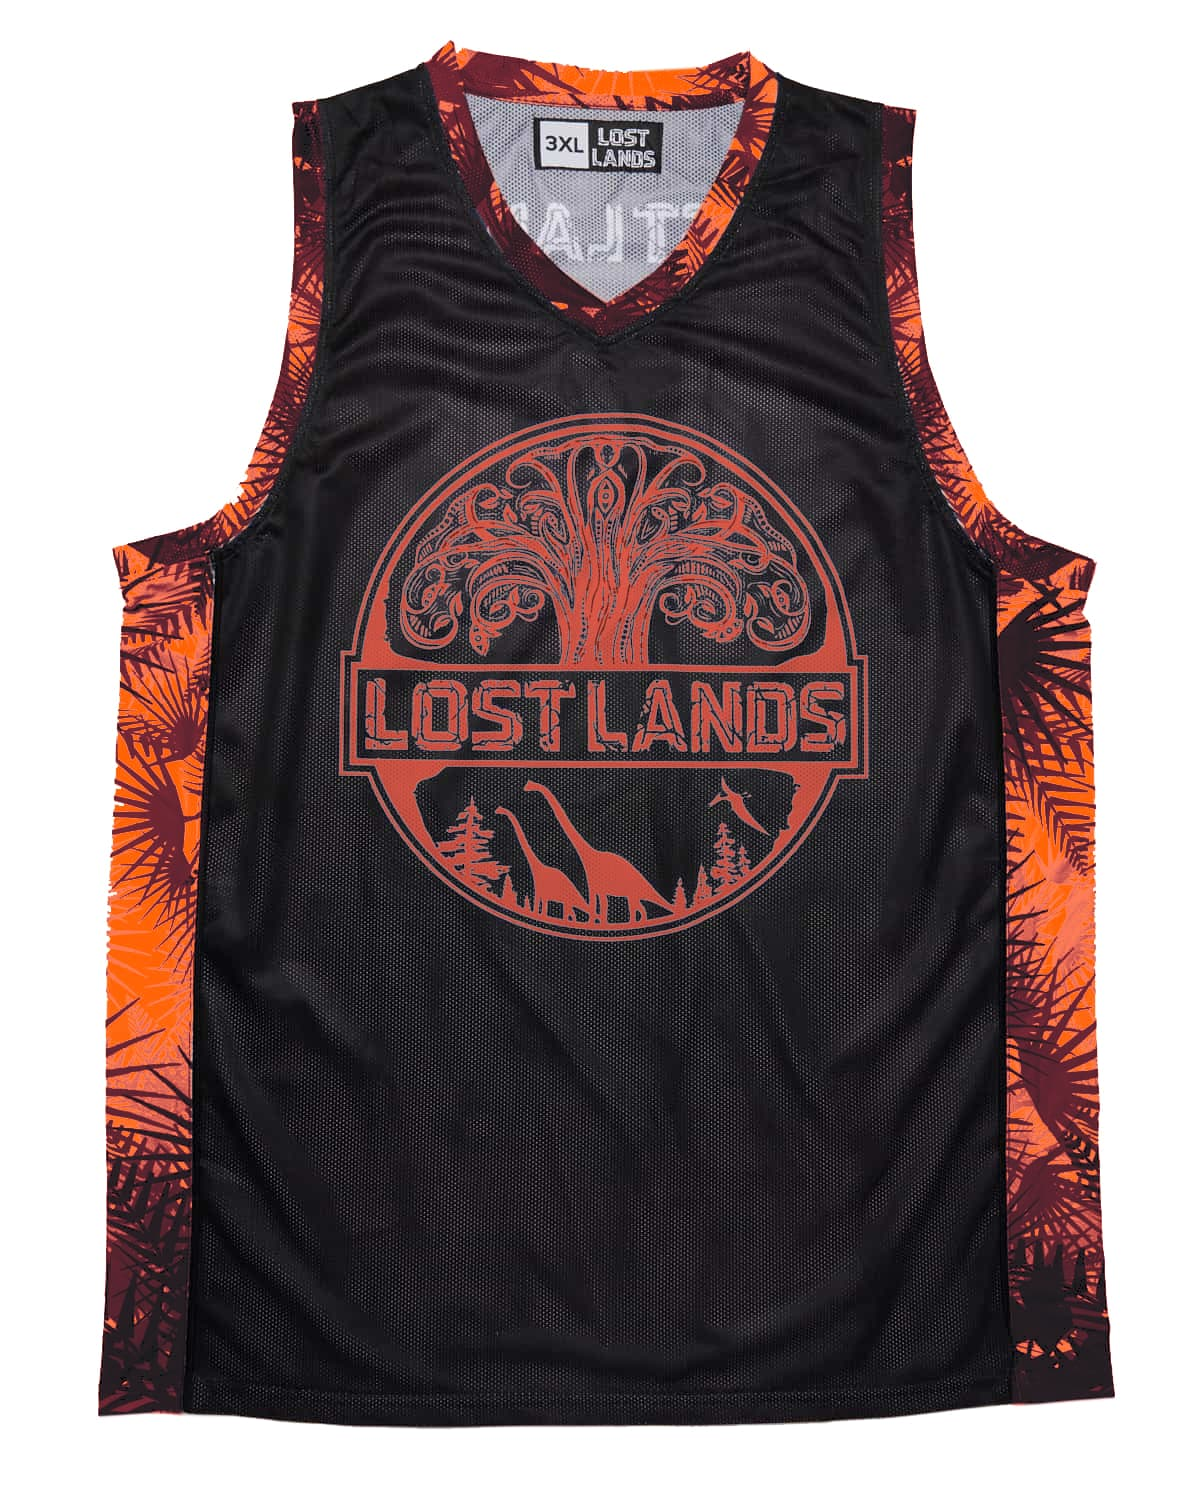 Lost Lands 2018 'Foliage' Basketball Jersey - Black/Red